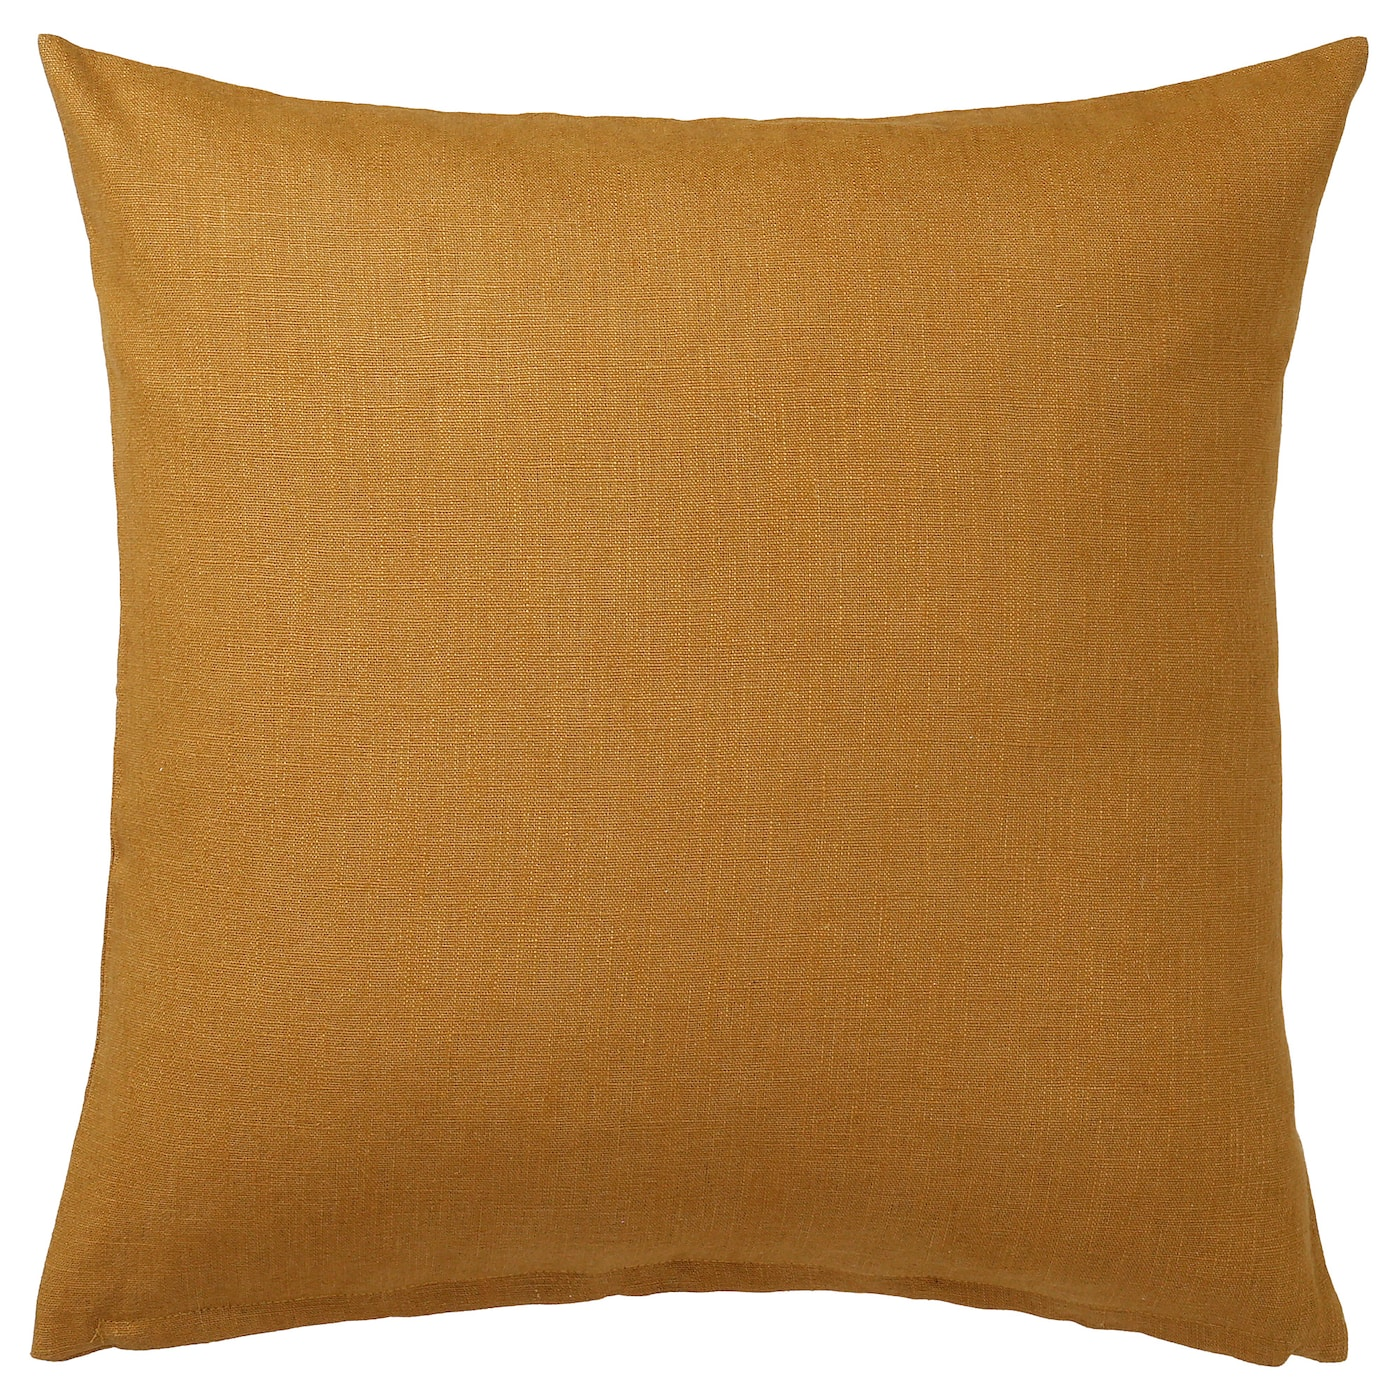 """FILLED CUSHIONS 18/"""" X 18/"""" INCH ORANGE with Embroidery Detail CUSHION COVERS"""